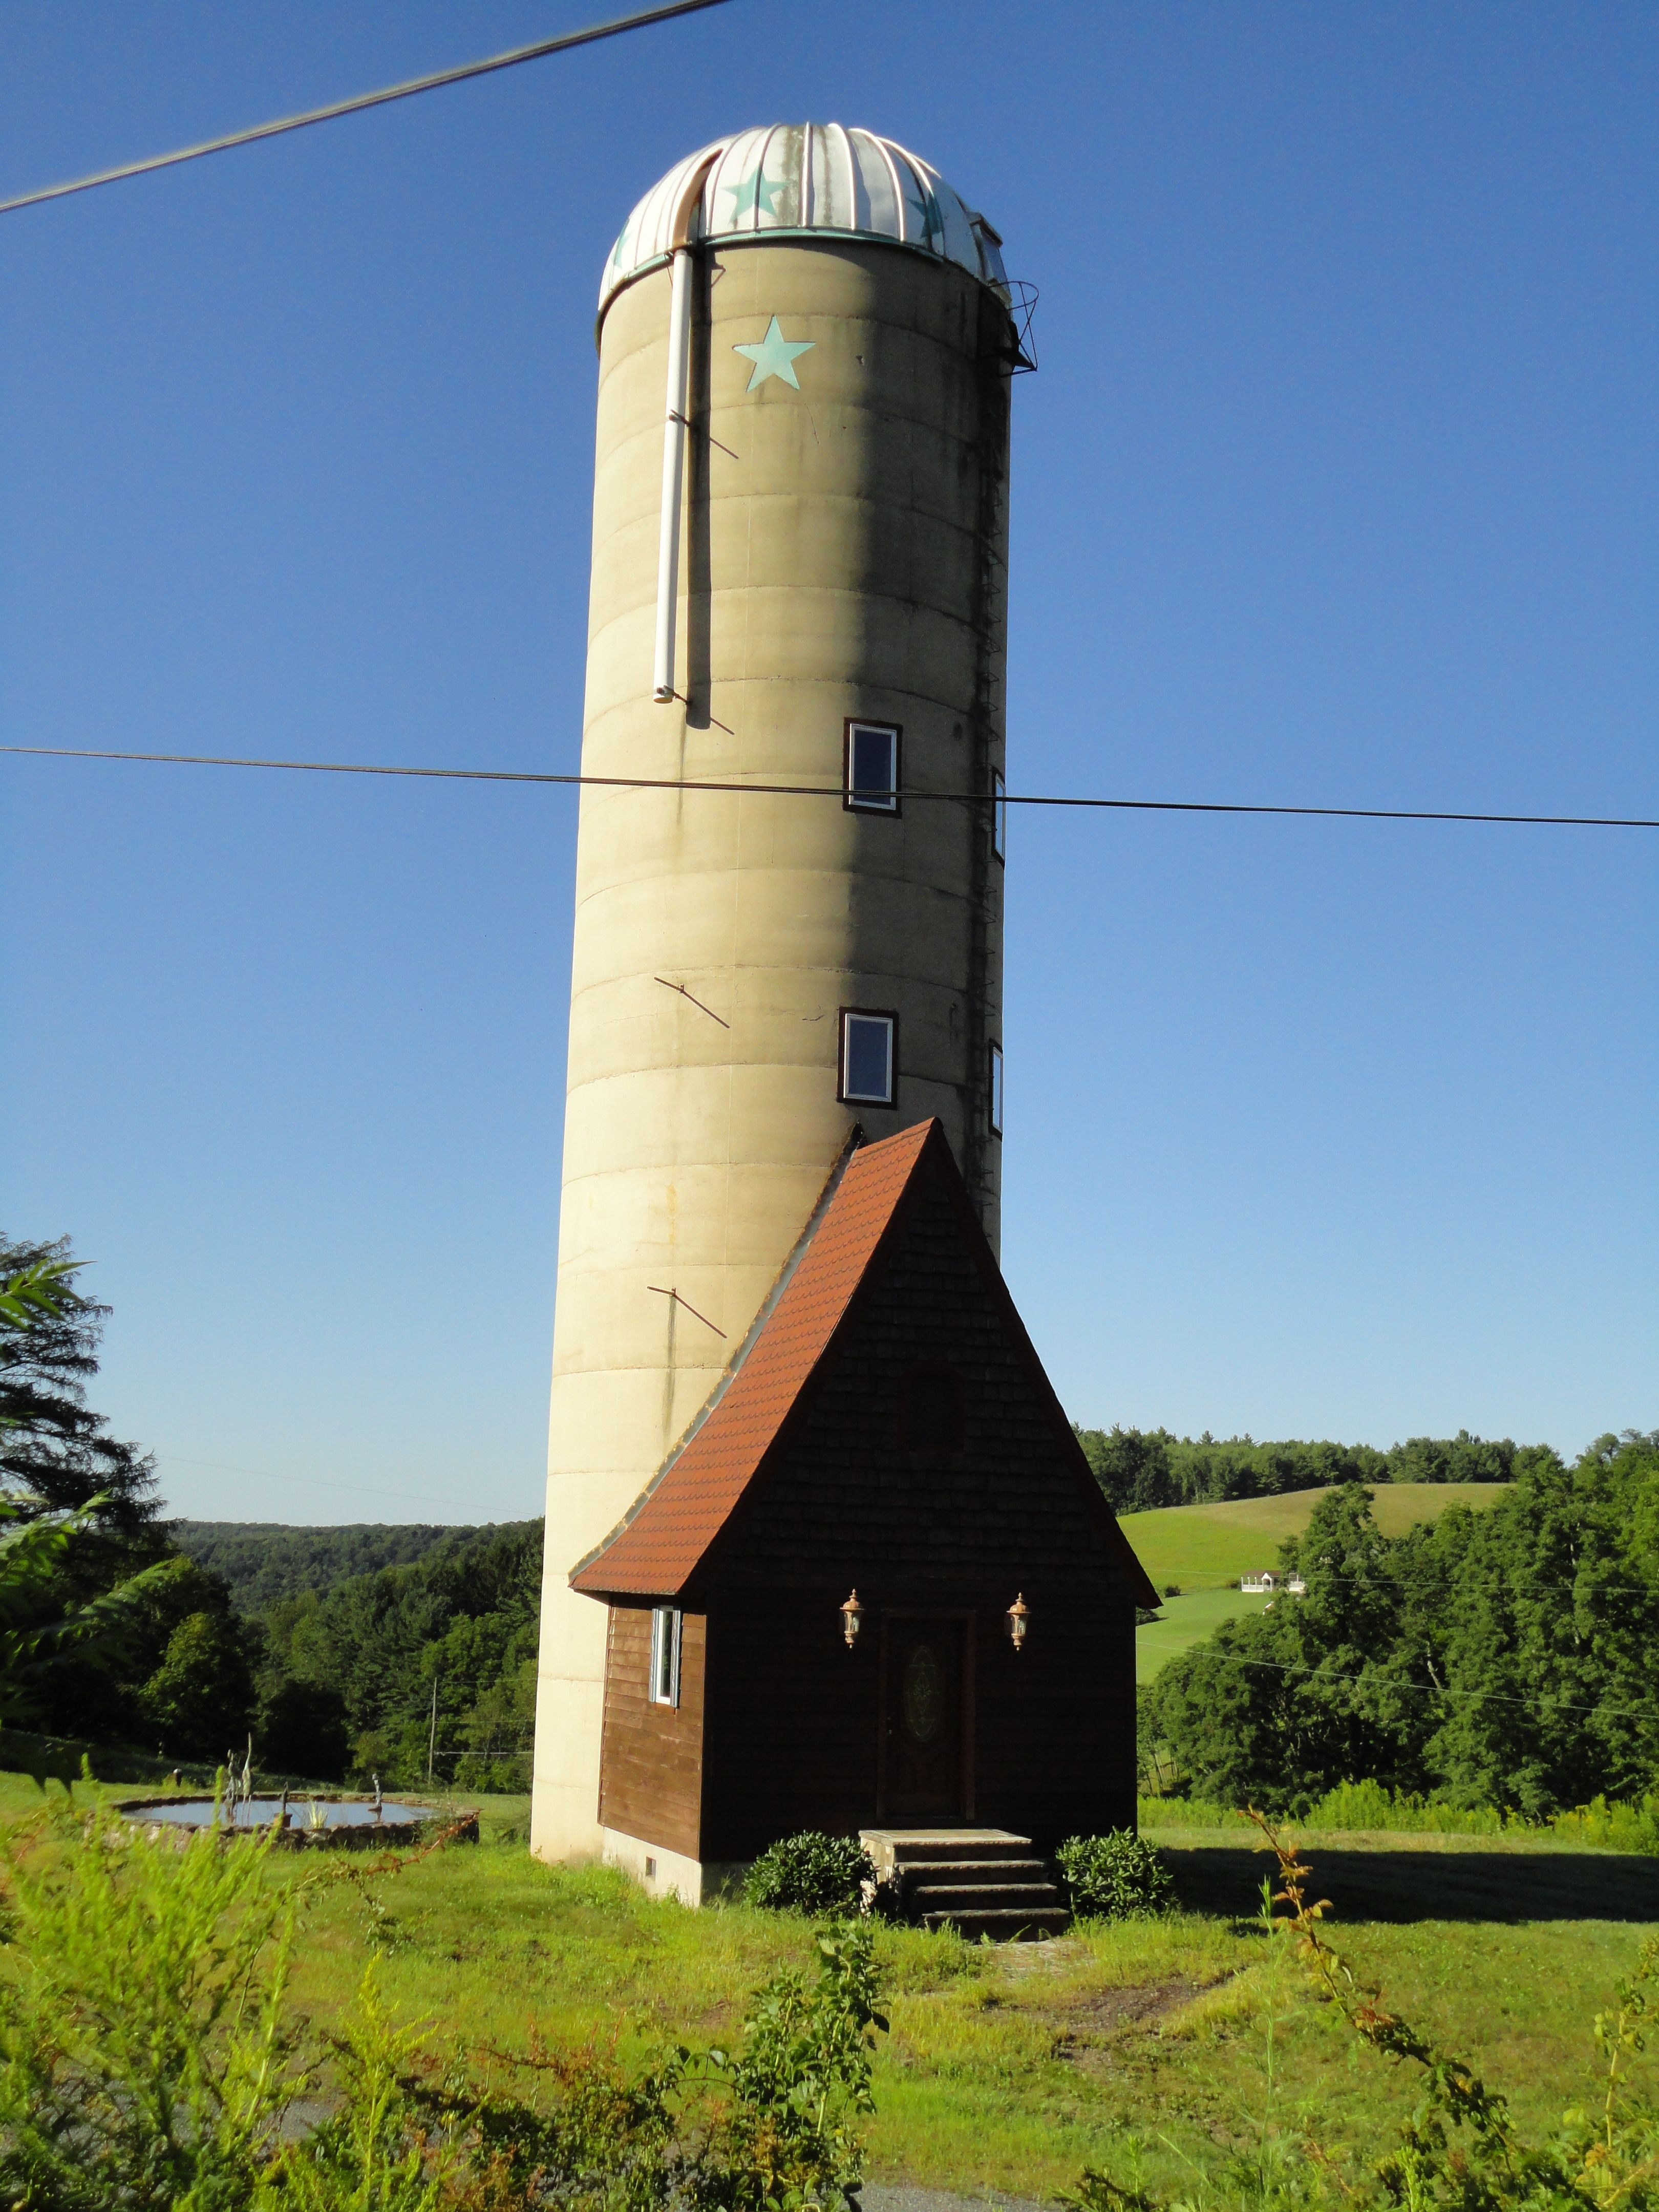 Amazing Silo That Has Been Converted Into A House In Rural Central Pa This Is The Cutest Thing Ever Silo House Grain Bin House Unusual Homes